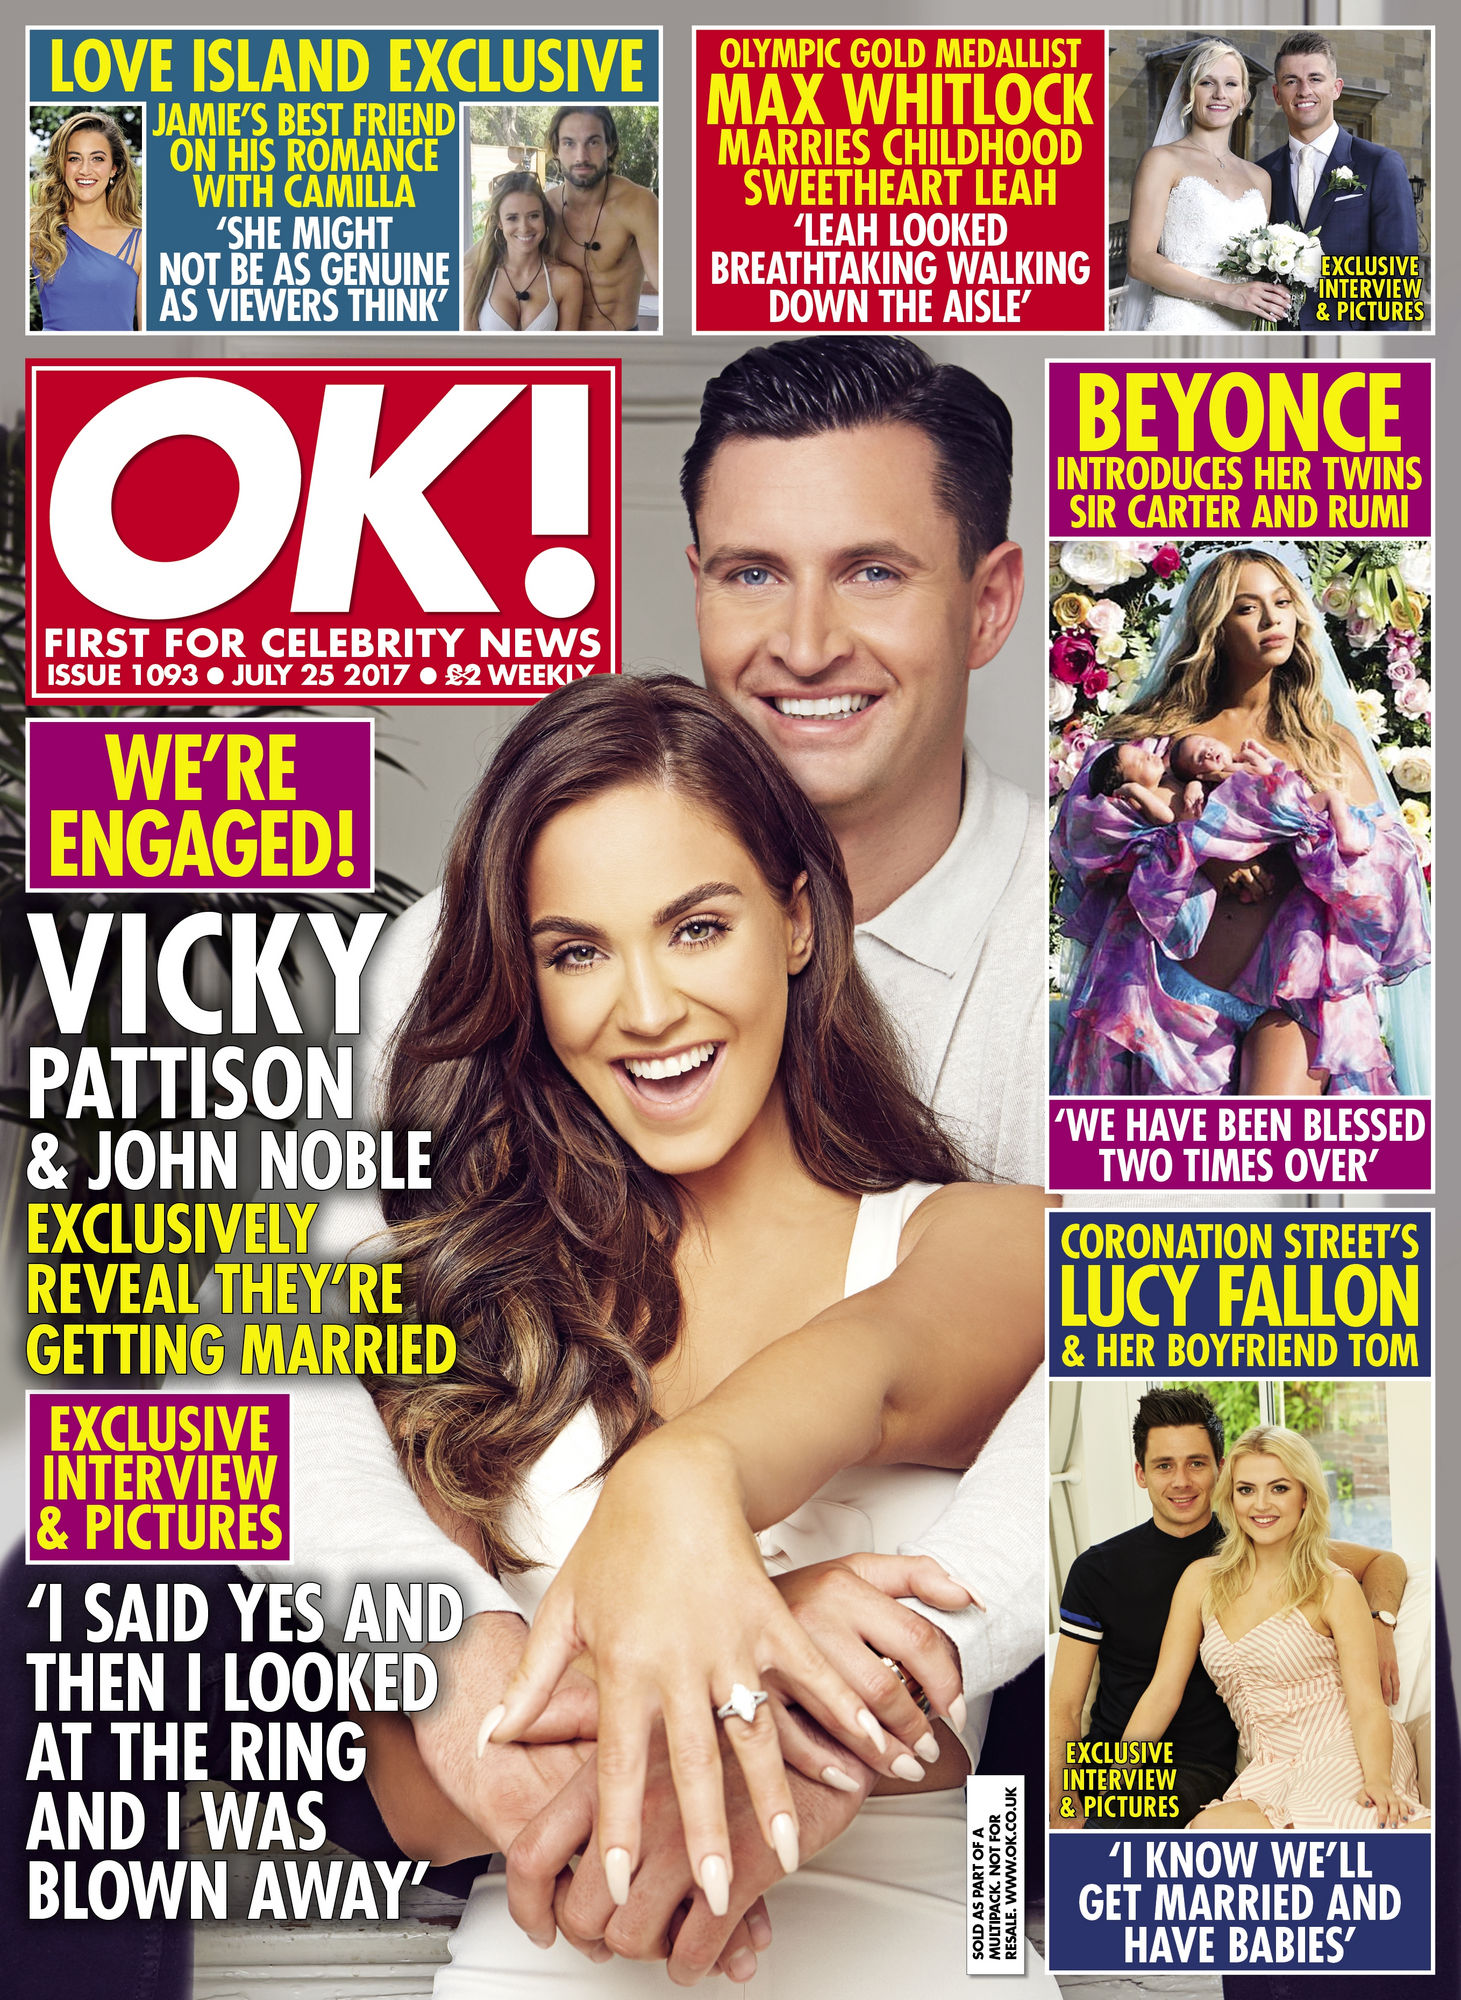 Vicky Pattison and John Noble